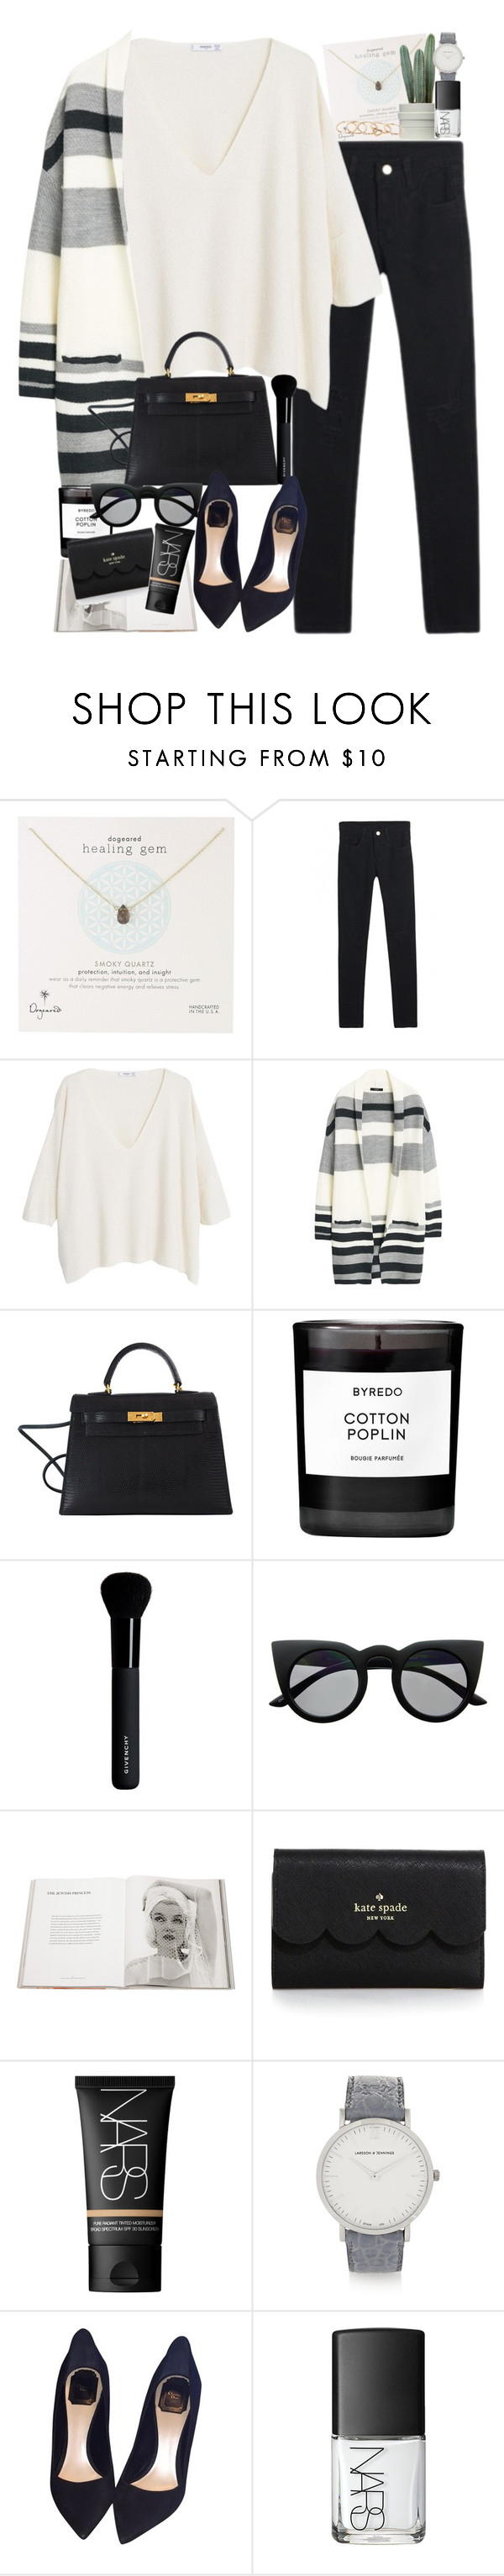 """Untitled #3303"" by peachv ❤ liked on Polyvore featuring Dogeared, MANGO, Hermès, Byredo, Givenchy, Retrò, Taschen, Kate Spade, NARS Cosmetics and Larsson & Jennings"